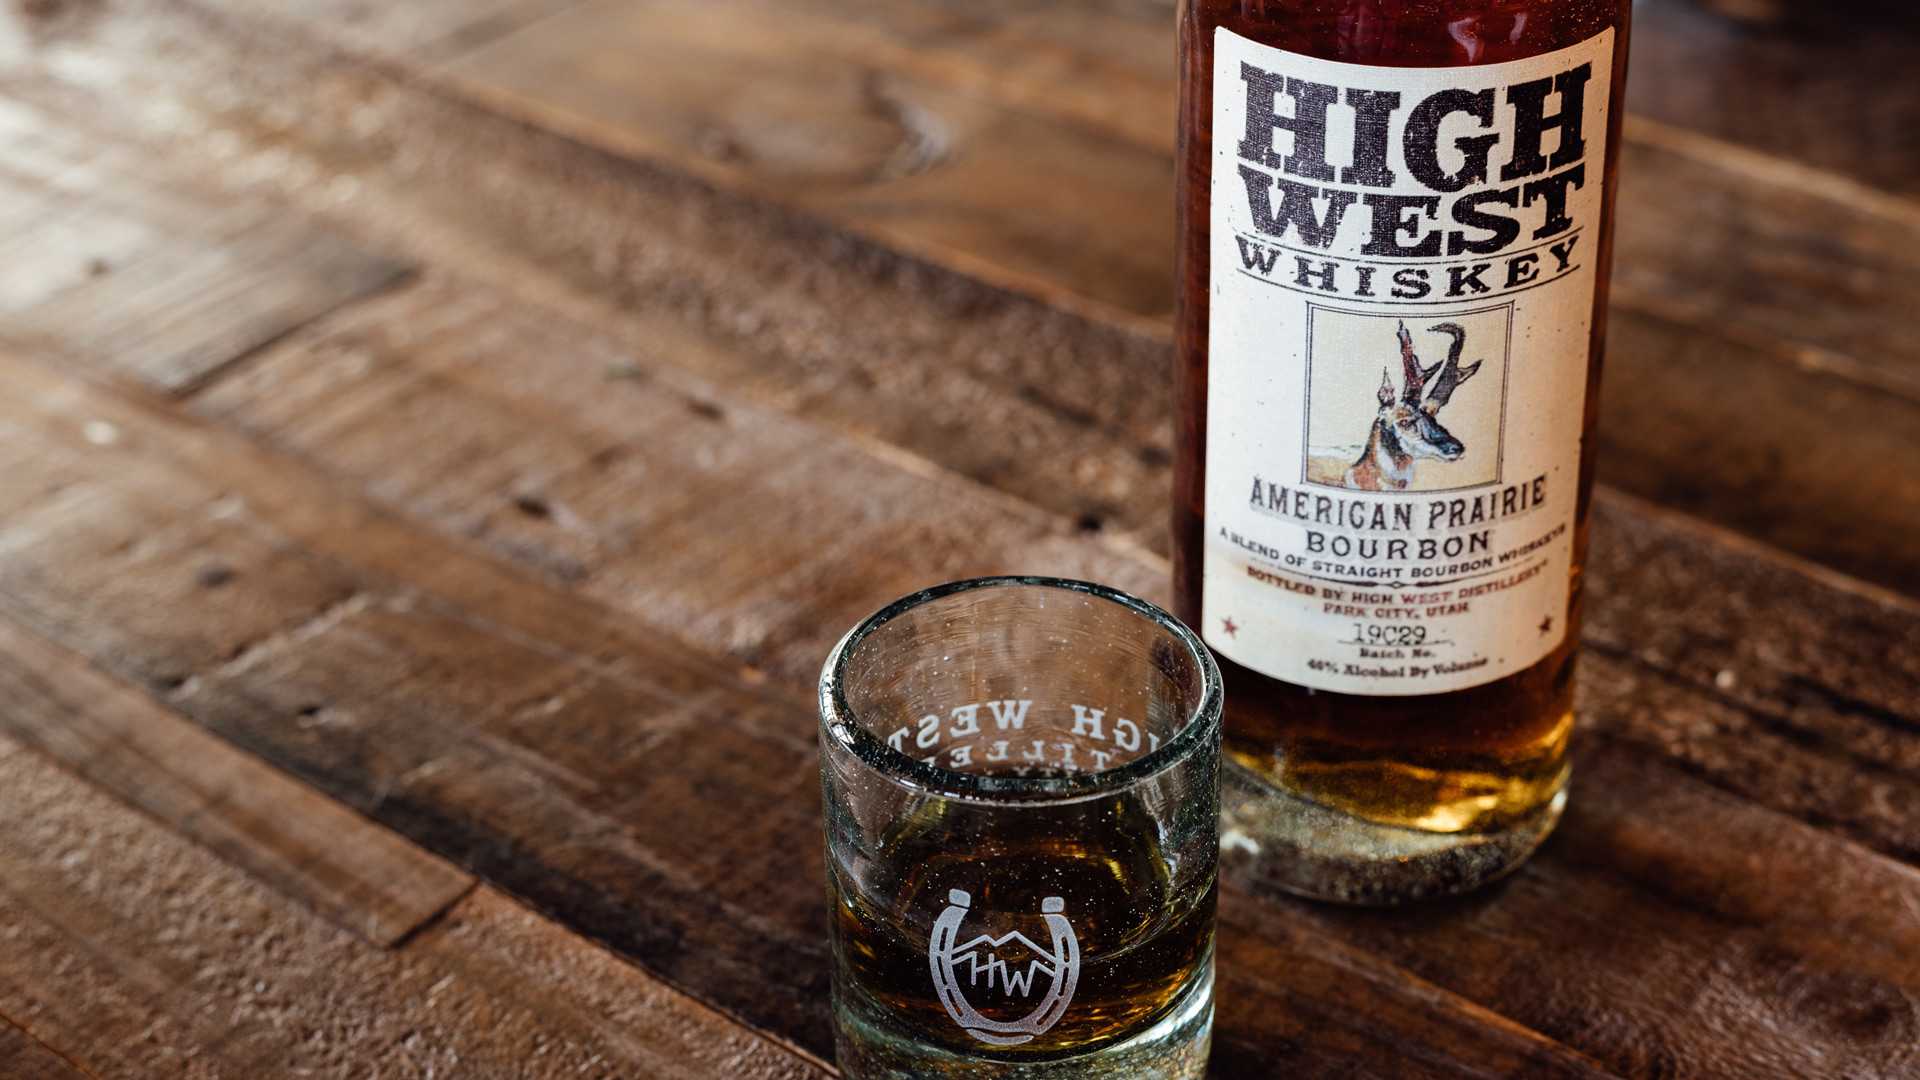 High West American craft whisky is now available at LCBO | A bottle of High West American Prairie Bourbon and a glass